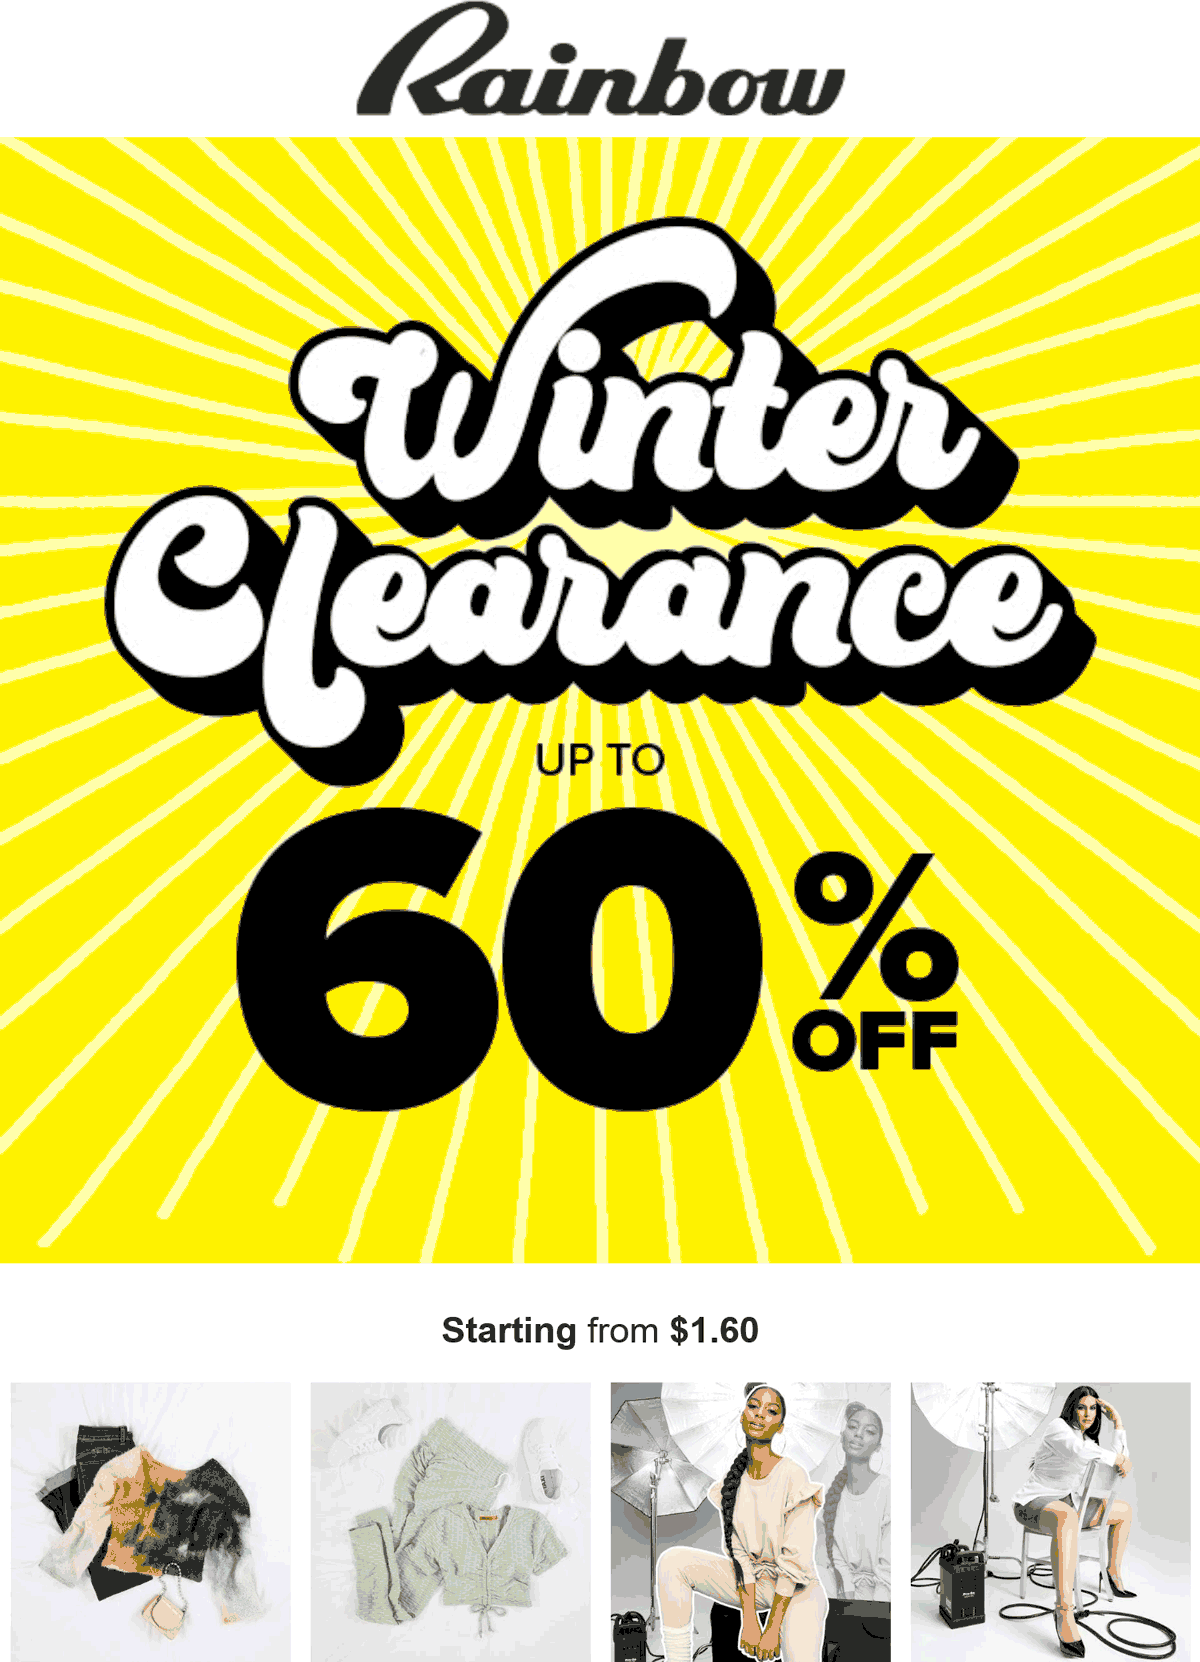 Rainbow stores Coupon  60% off winter clearance going on at Rainbow shops #rainbow